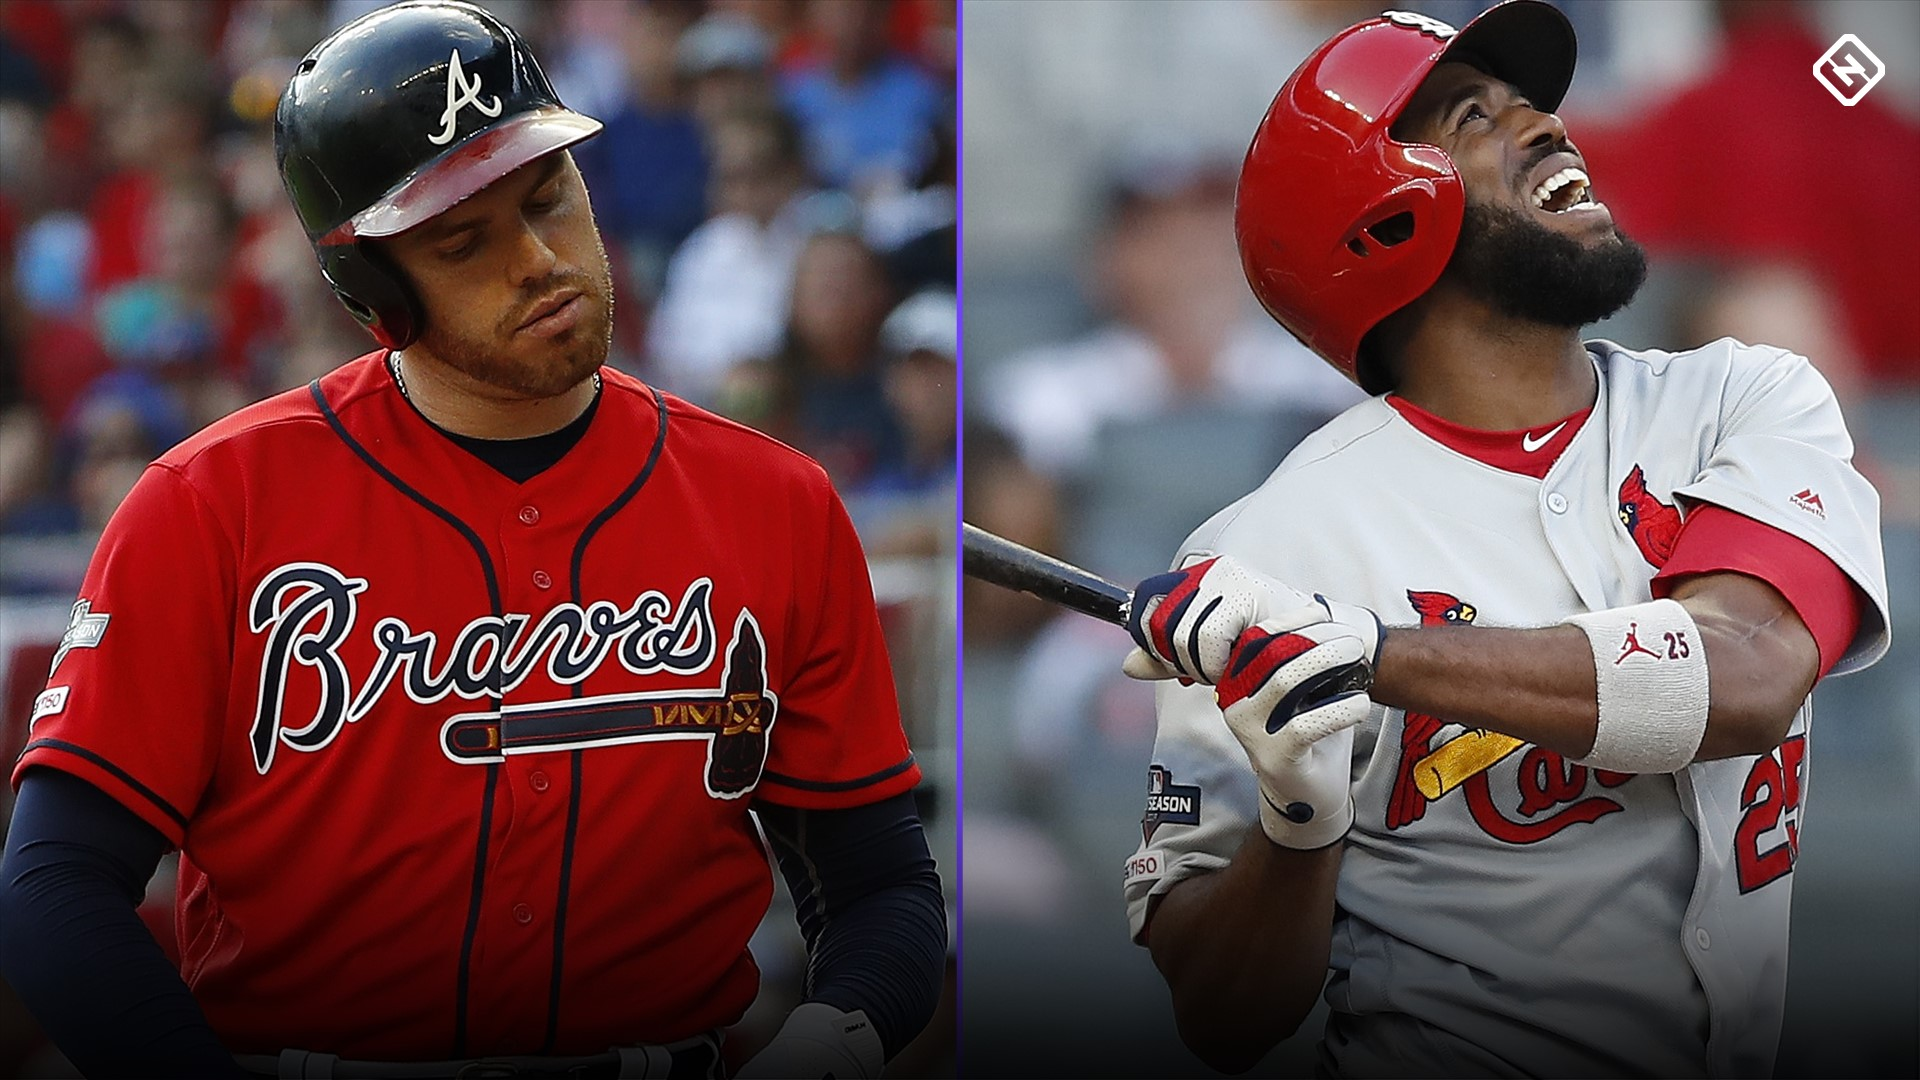 Cardinals and Braves are both lucky to have made it to Game 5 with cold bats